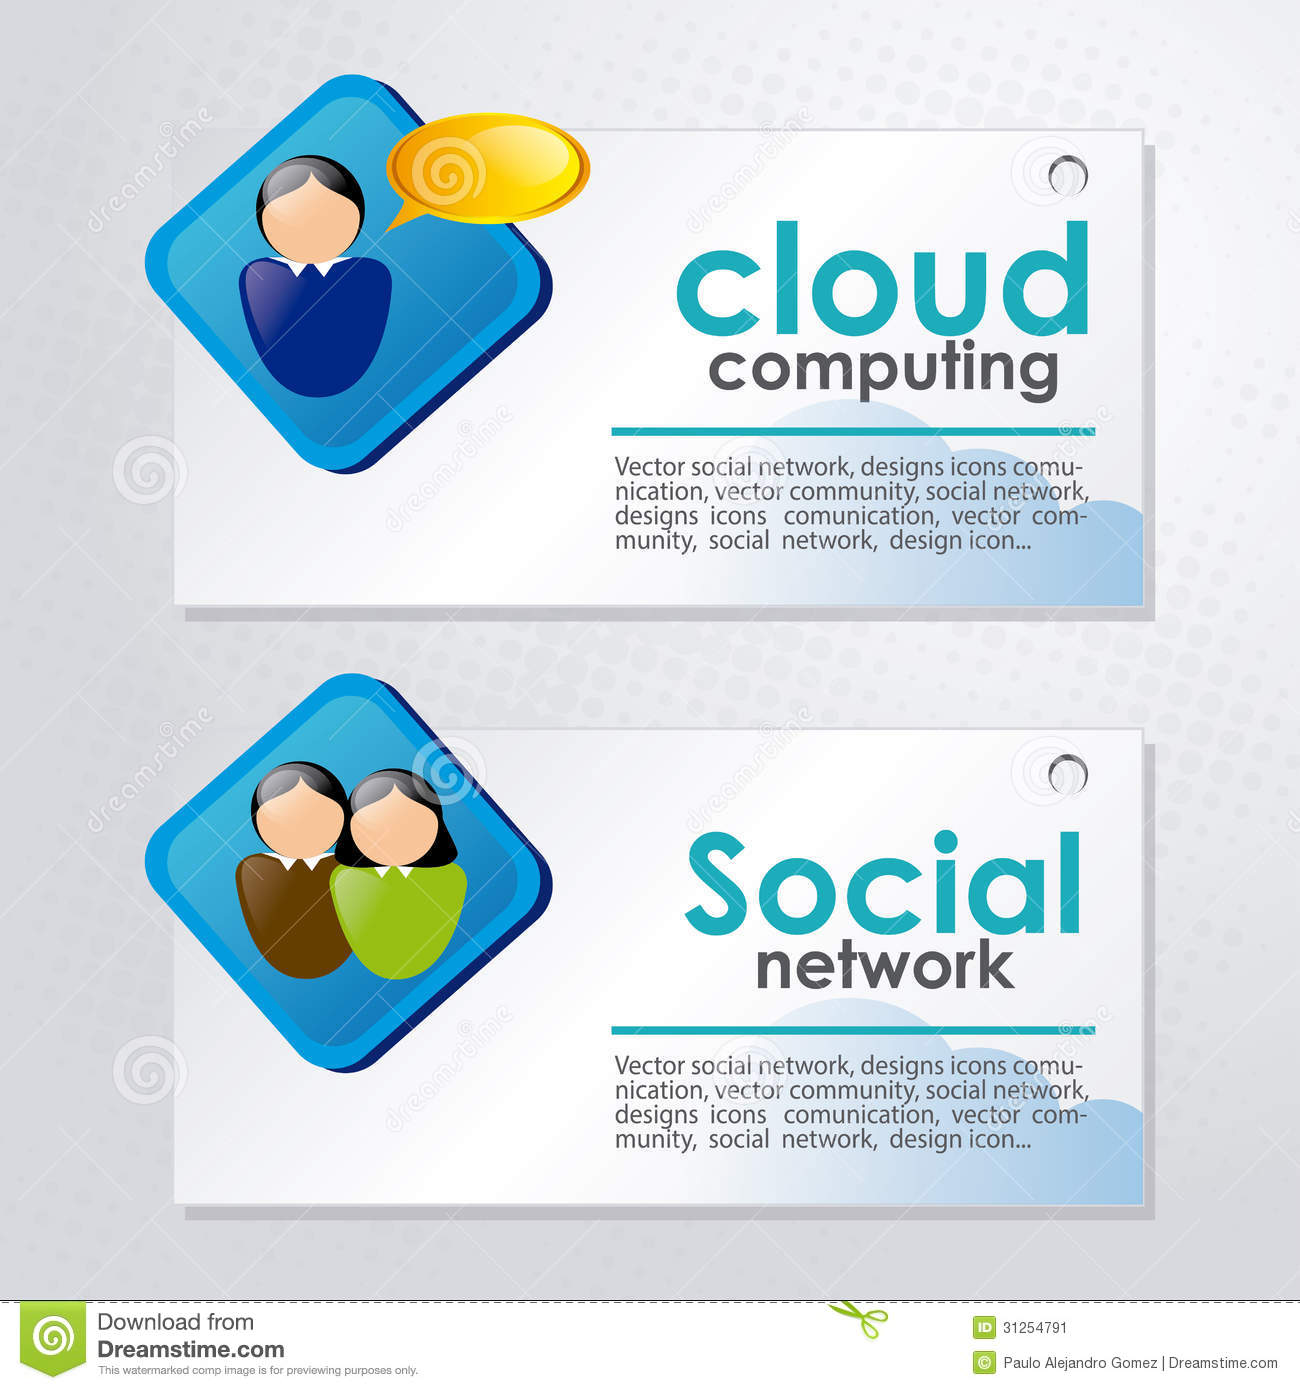 Networking Cloud Computing: Cloud Computing And Social Network Stock Image